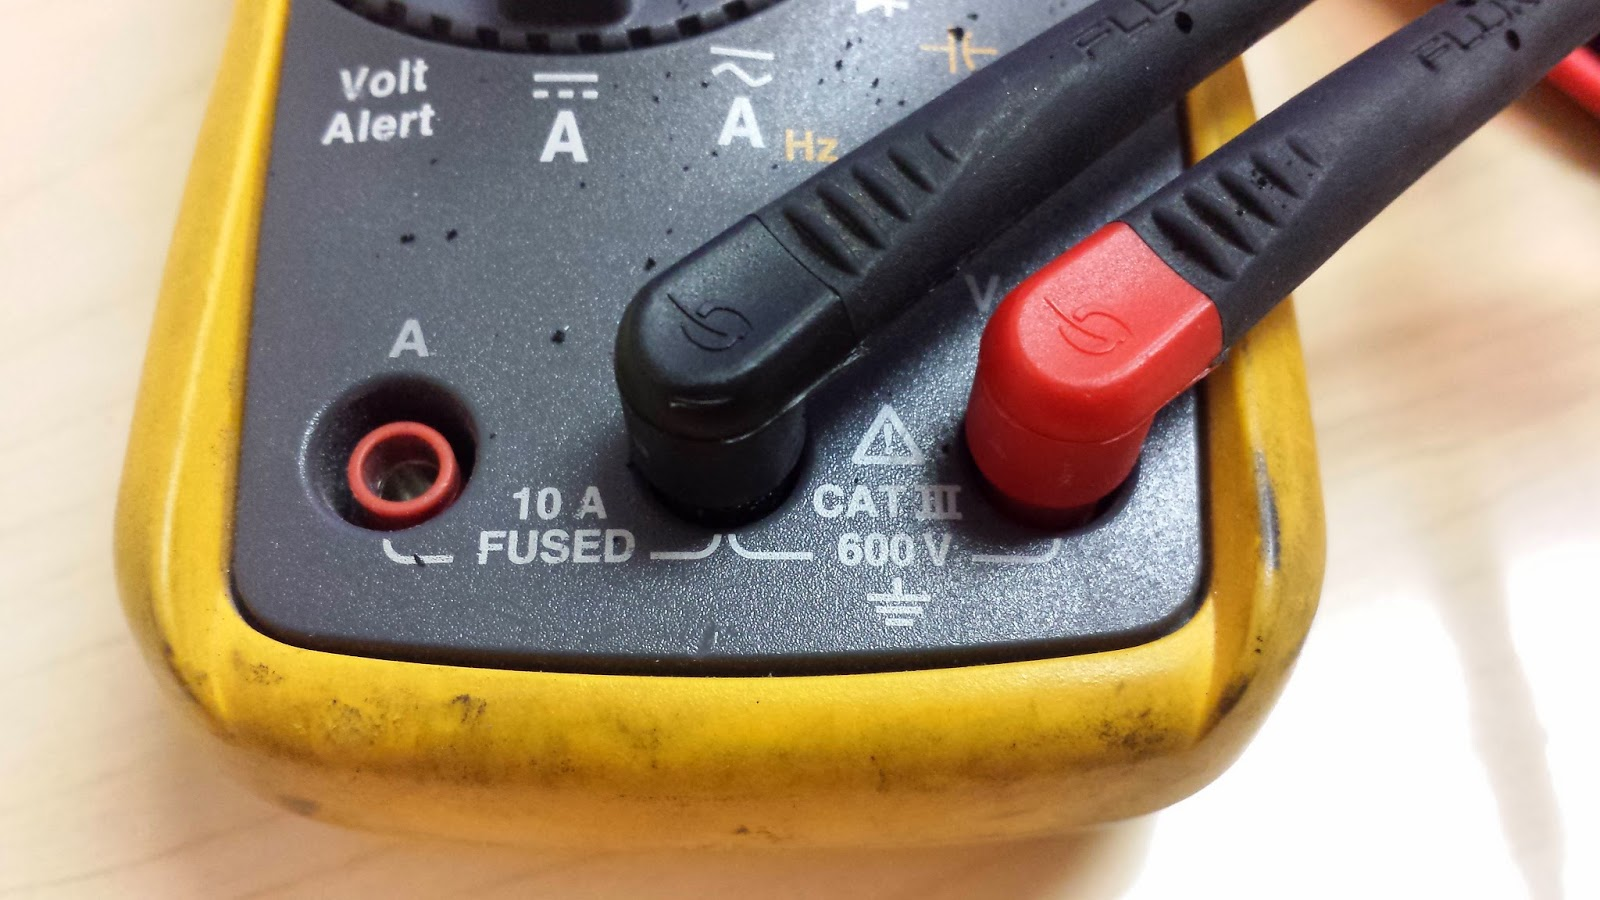 FLUKE Voltmeter or Multi Meter Test Lead Terminals